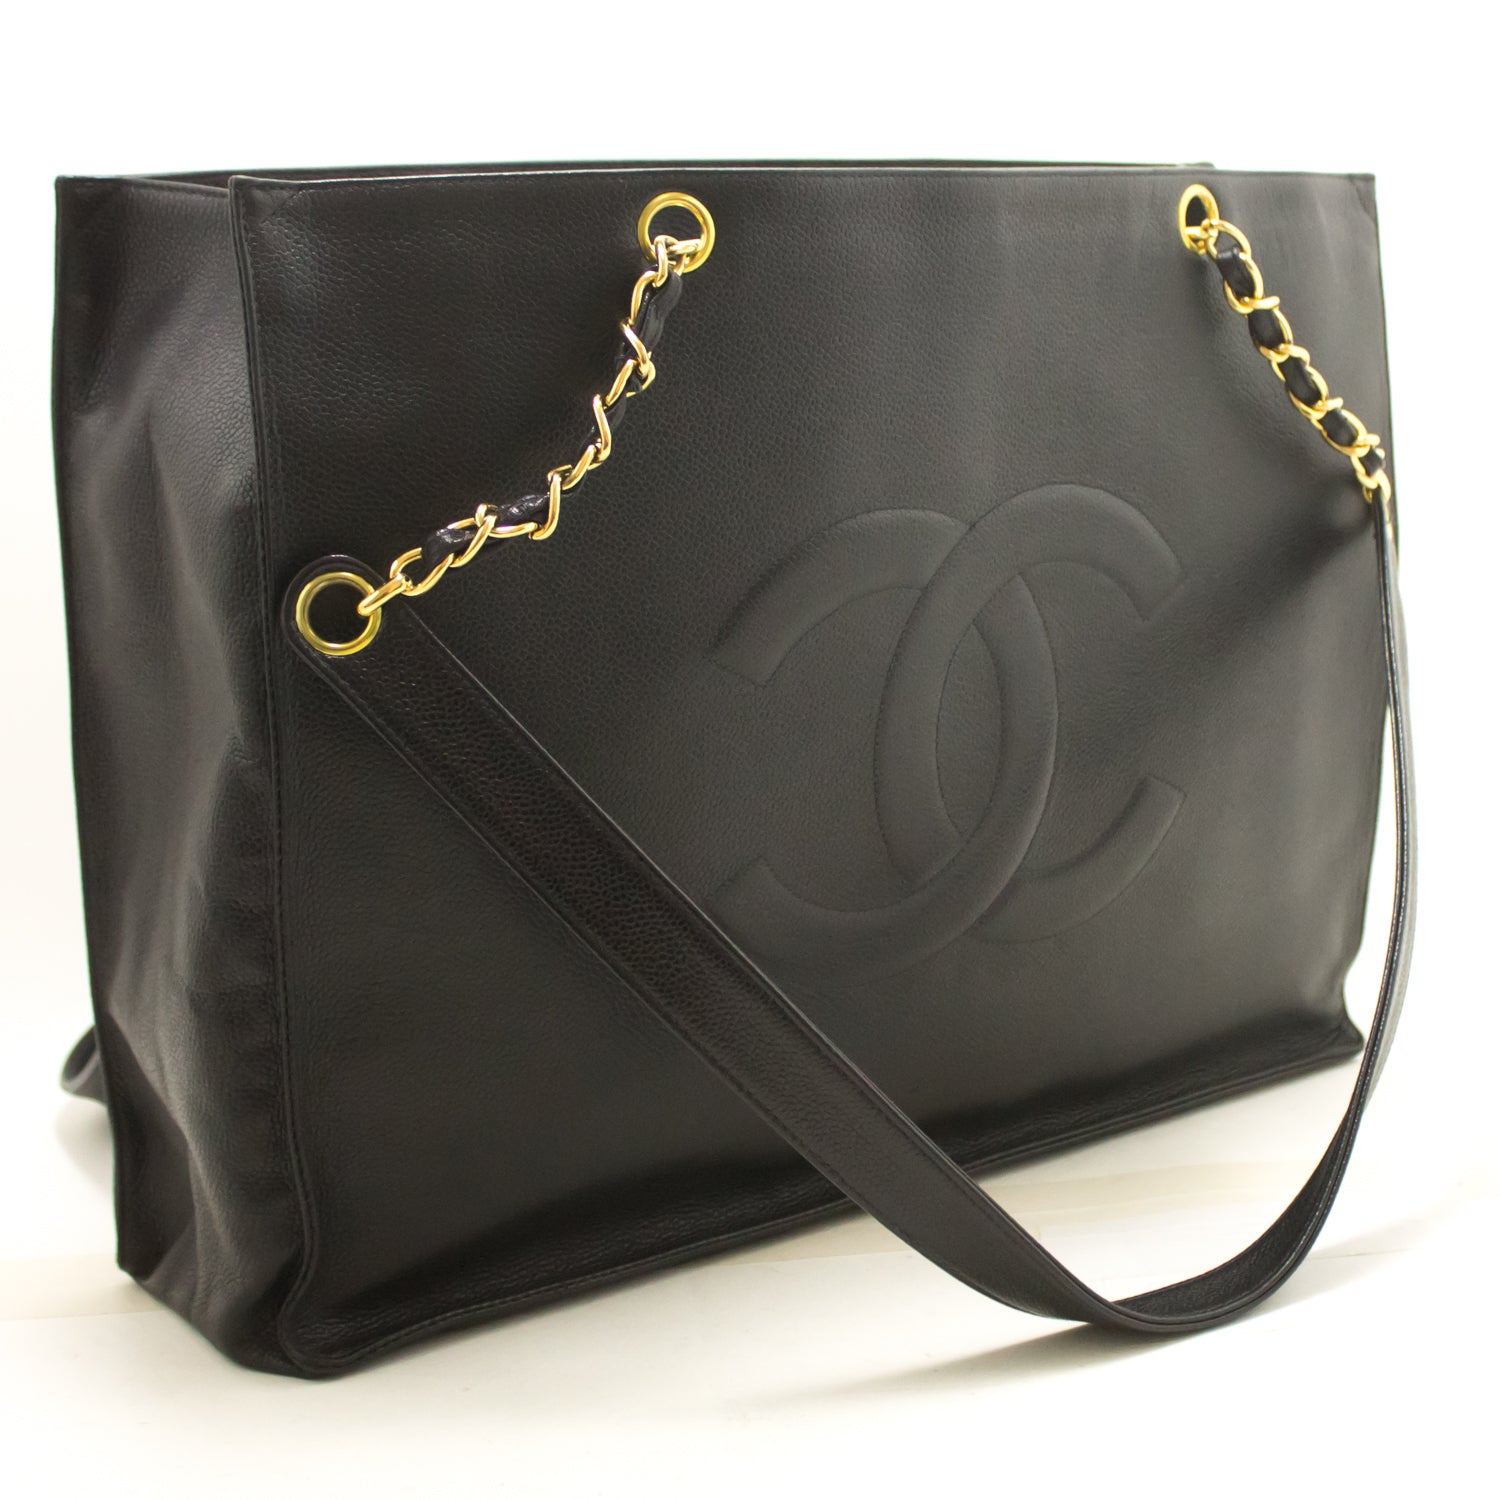 d106cbc167bf ... CHANEL Caviar Jumbo Chain Shoulder Bag Black Leather Large Big k22- Chanel-hannari- ...